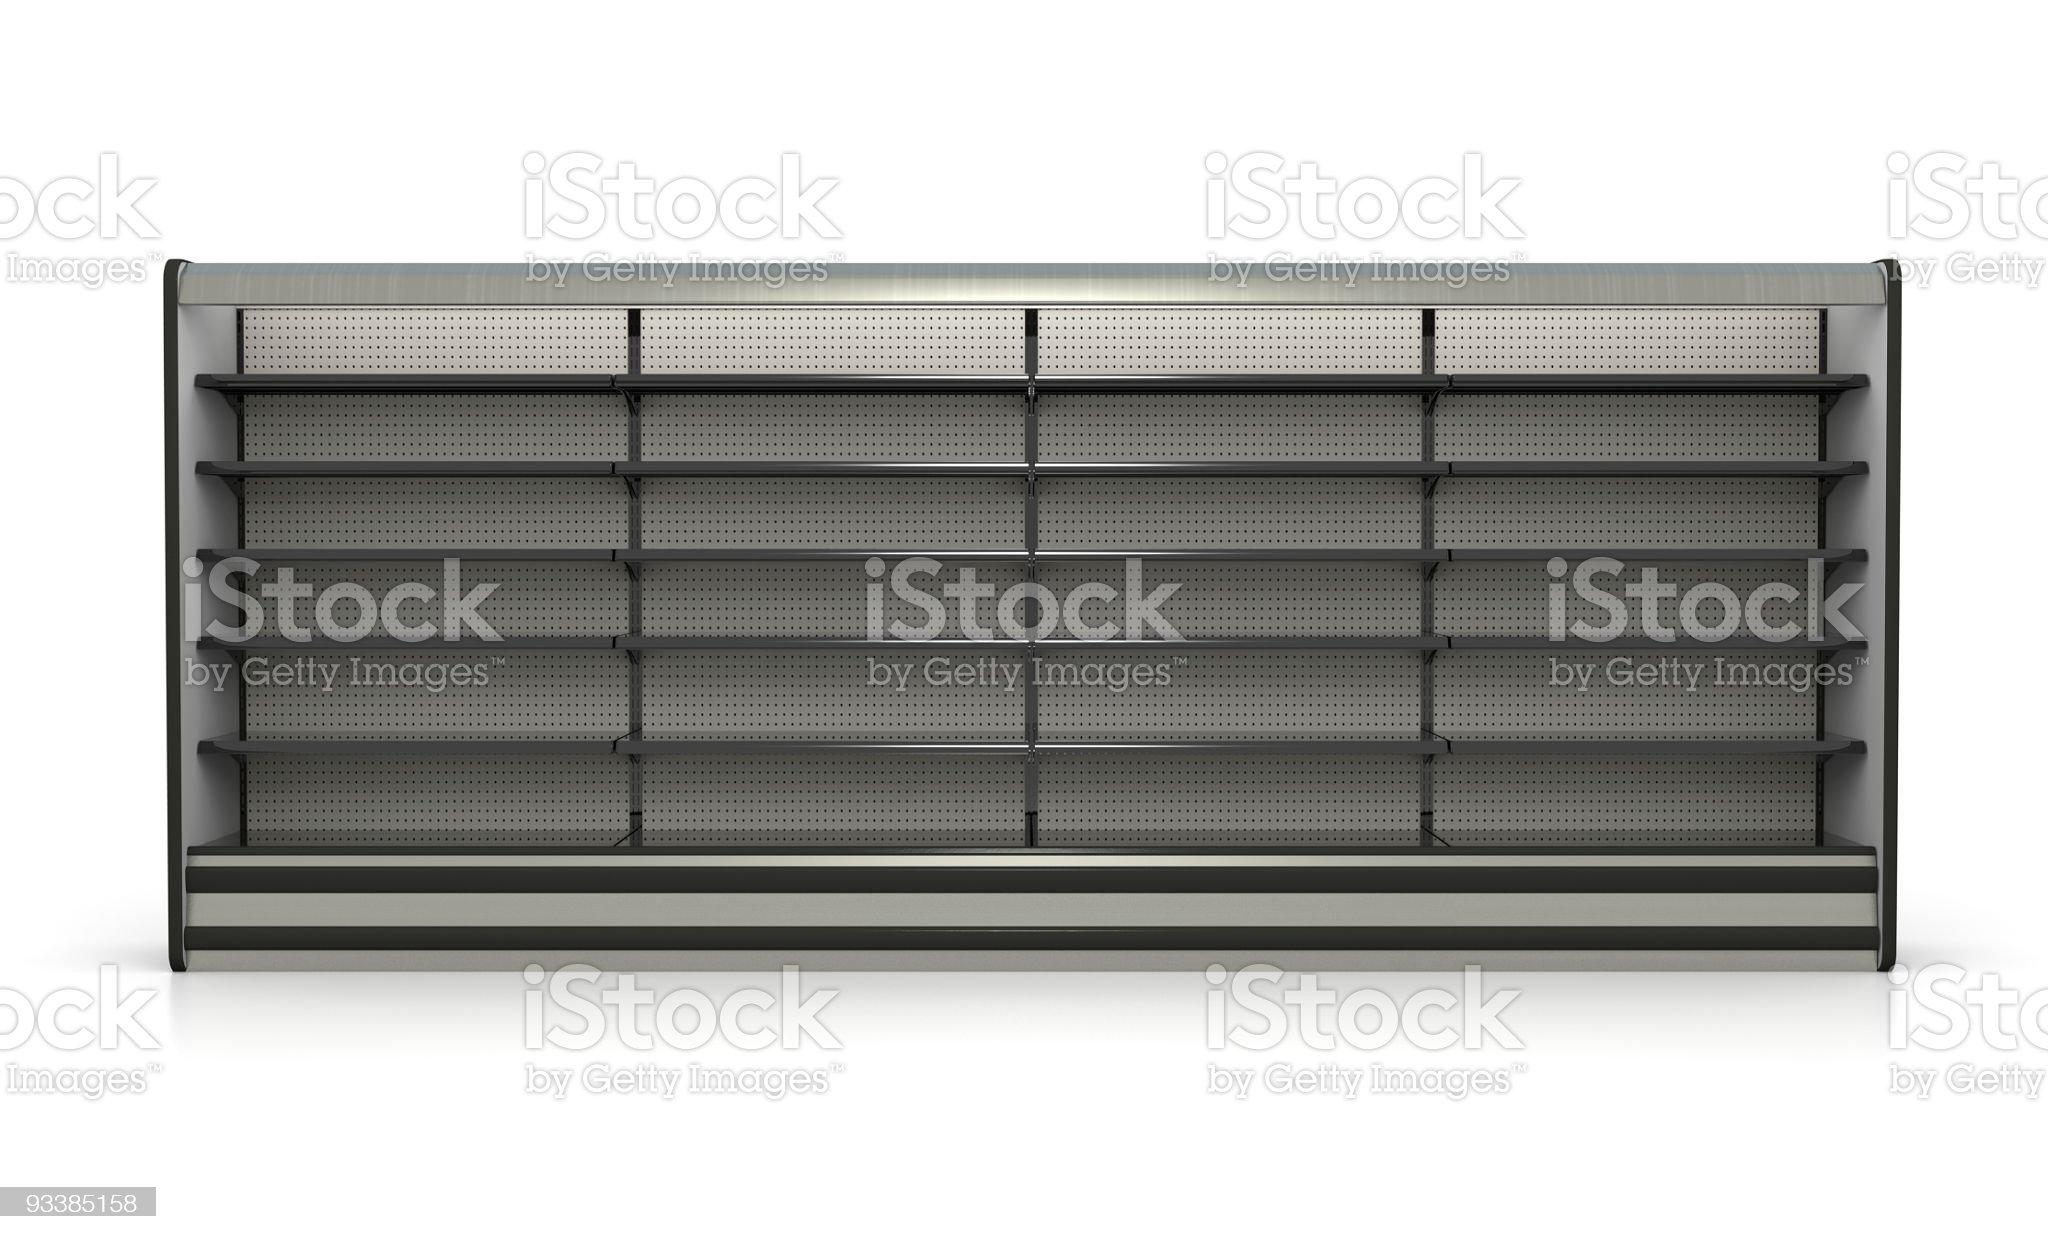 Dairy Case Refrigerated Store Shelves - Retail Environment royalty-free stock photo